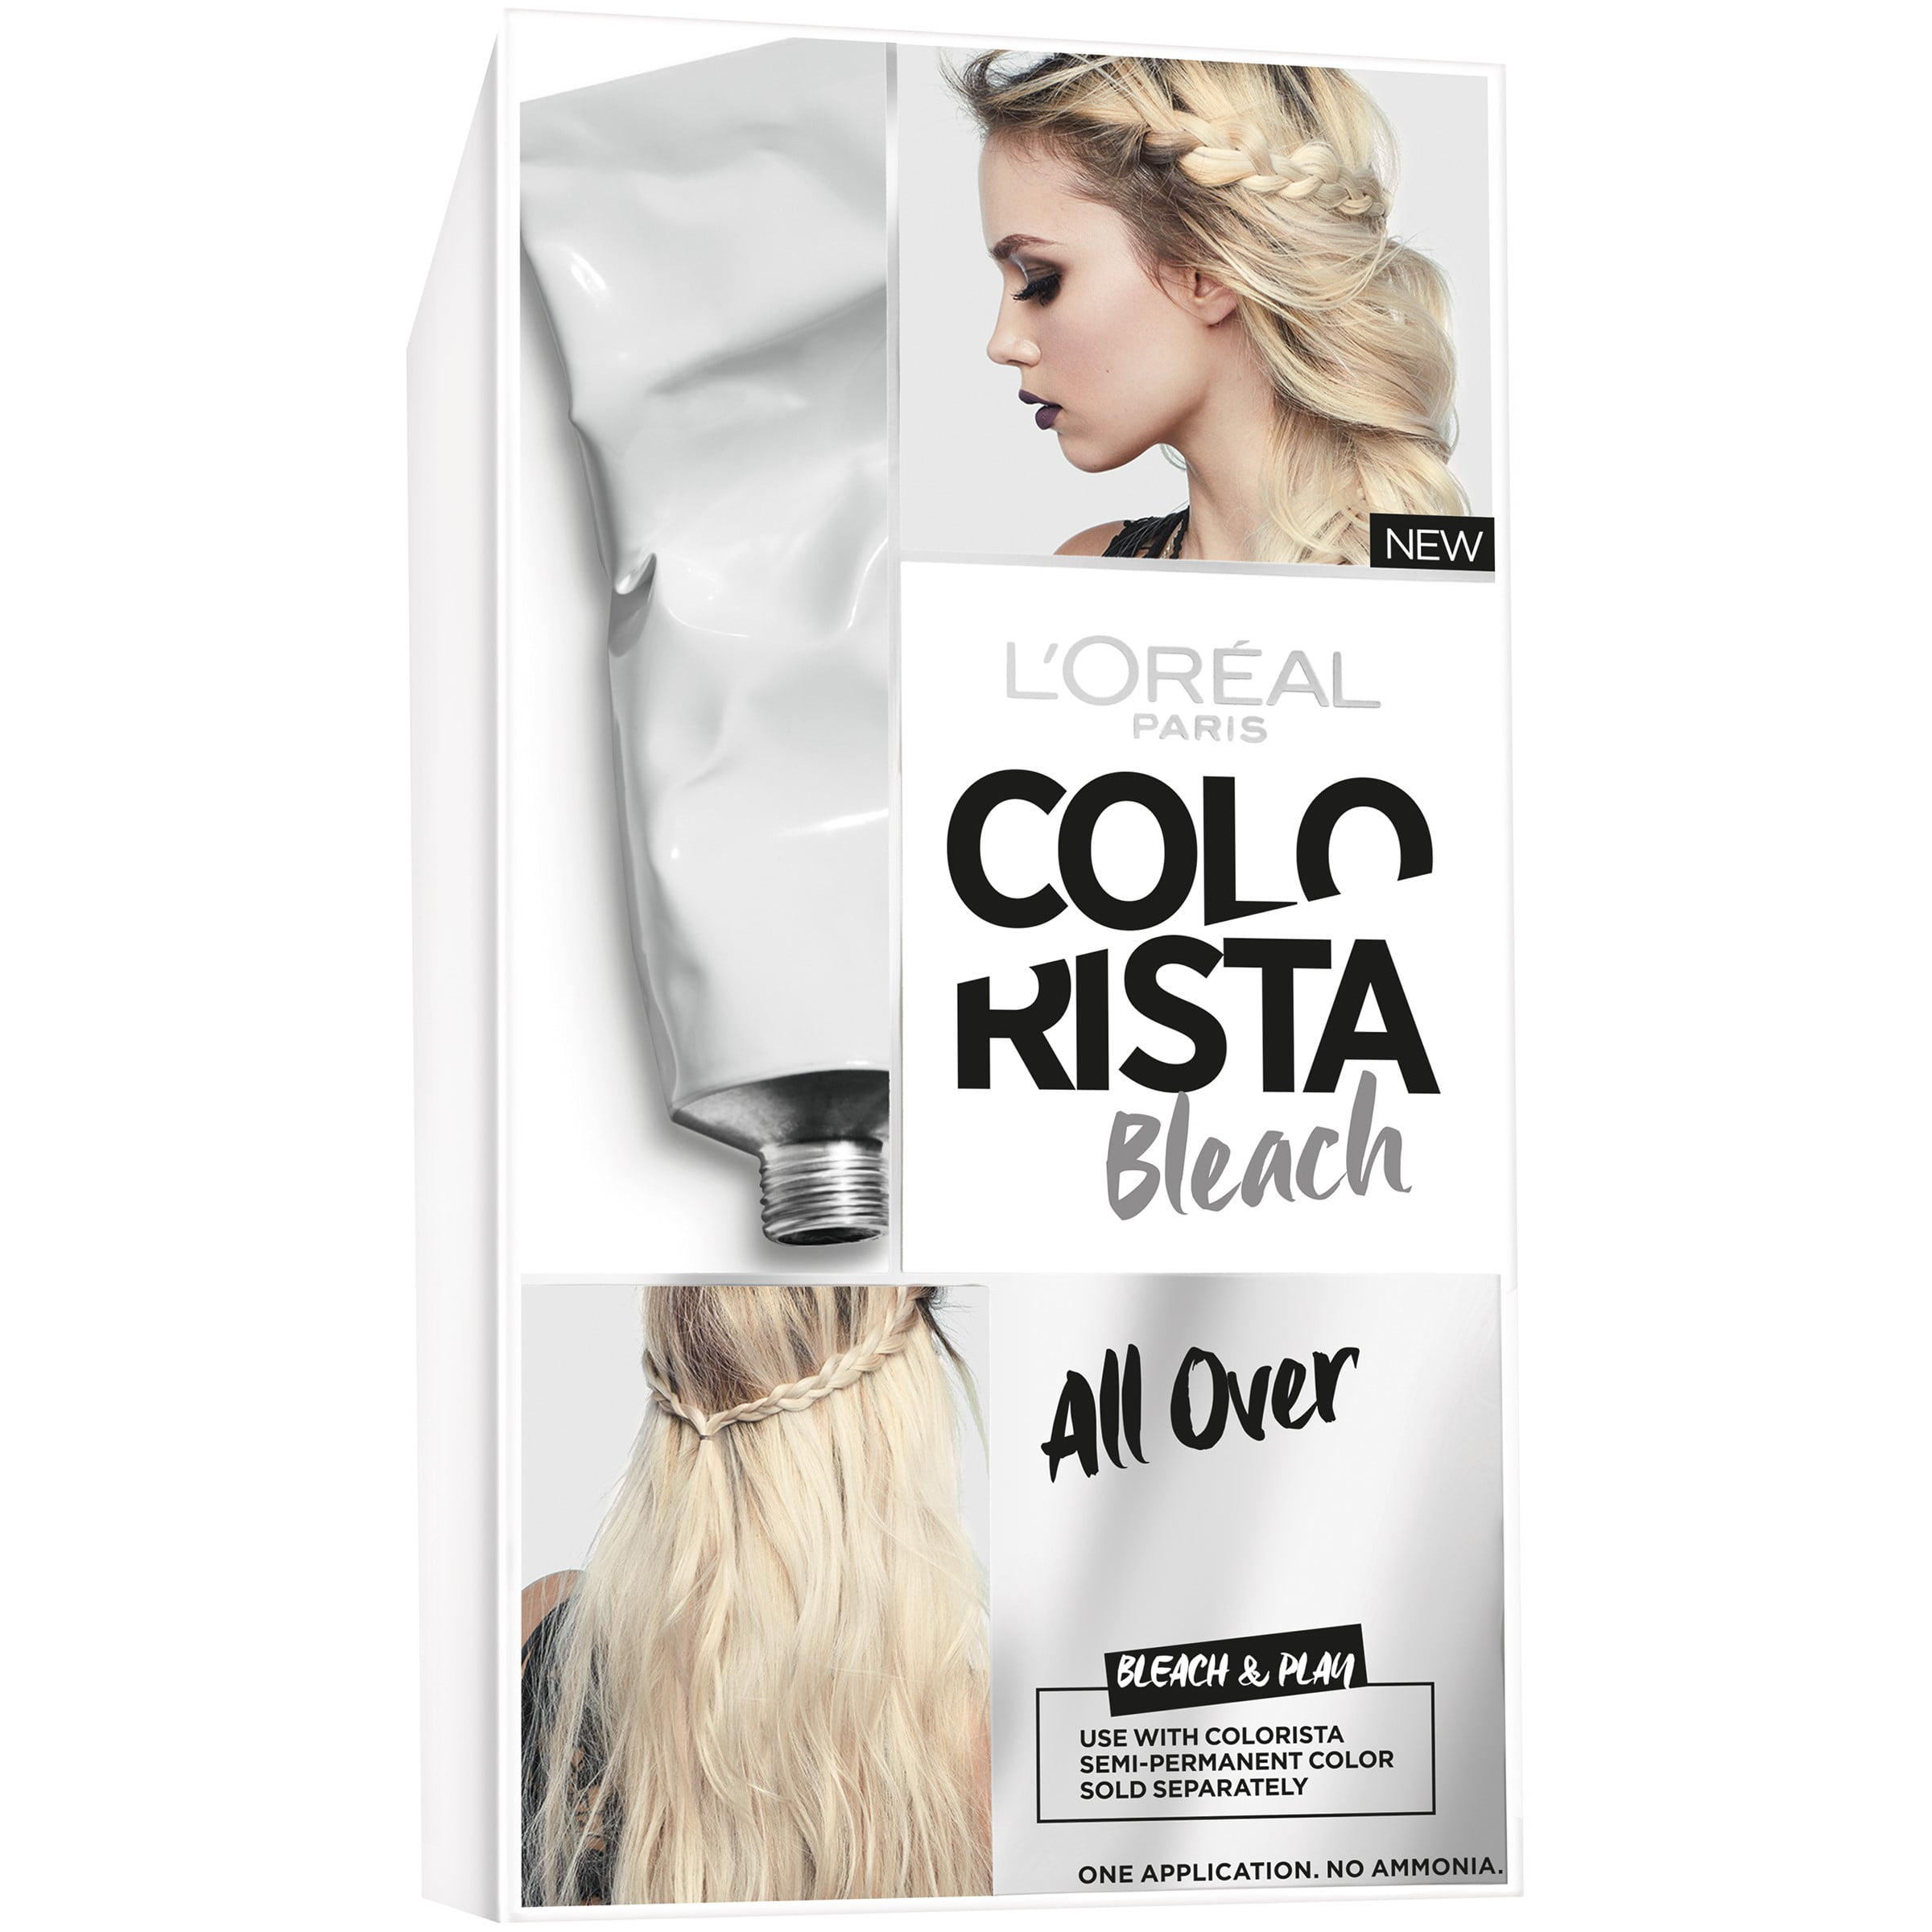 L\'Oreal Paris Colorista Bleach - Walmart.com